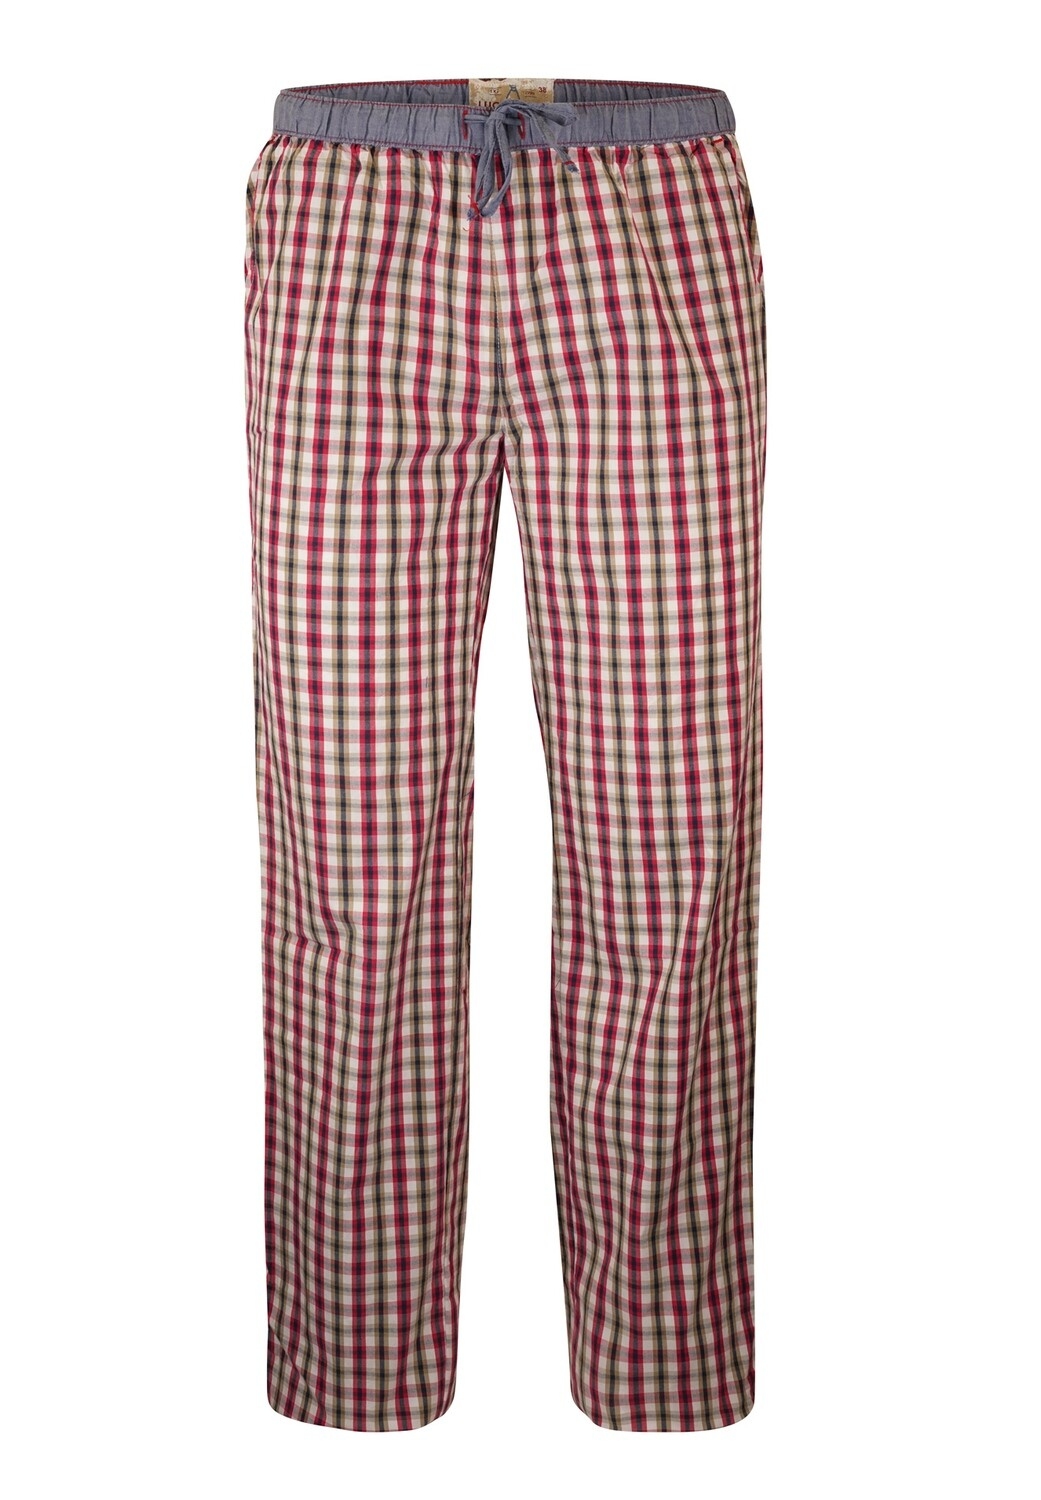 LUCA DAVID Olden Glory Ladies Pyjamahose